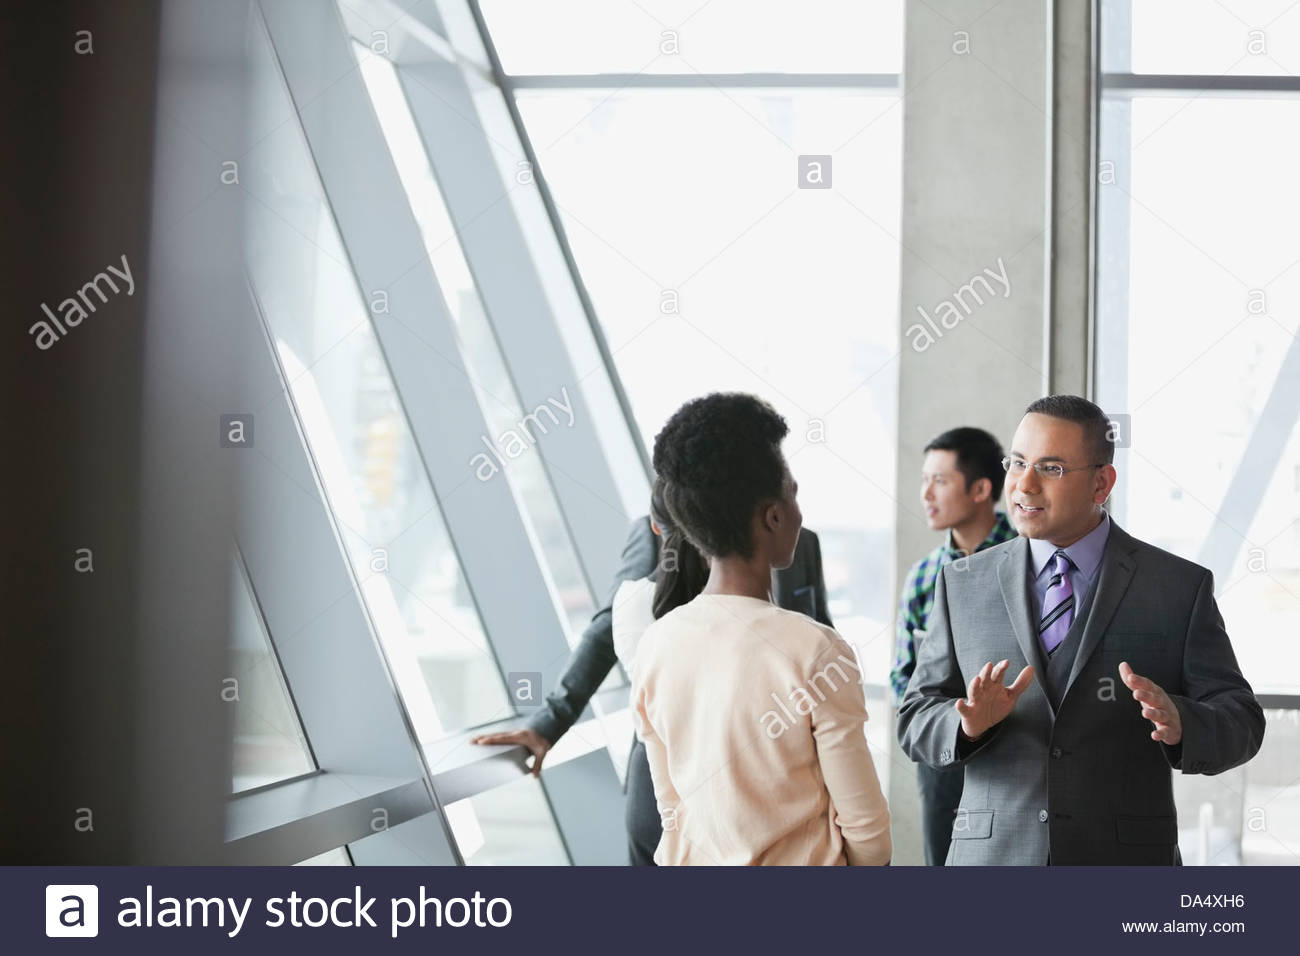 Business people talking together in office building - Stock Image